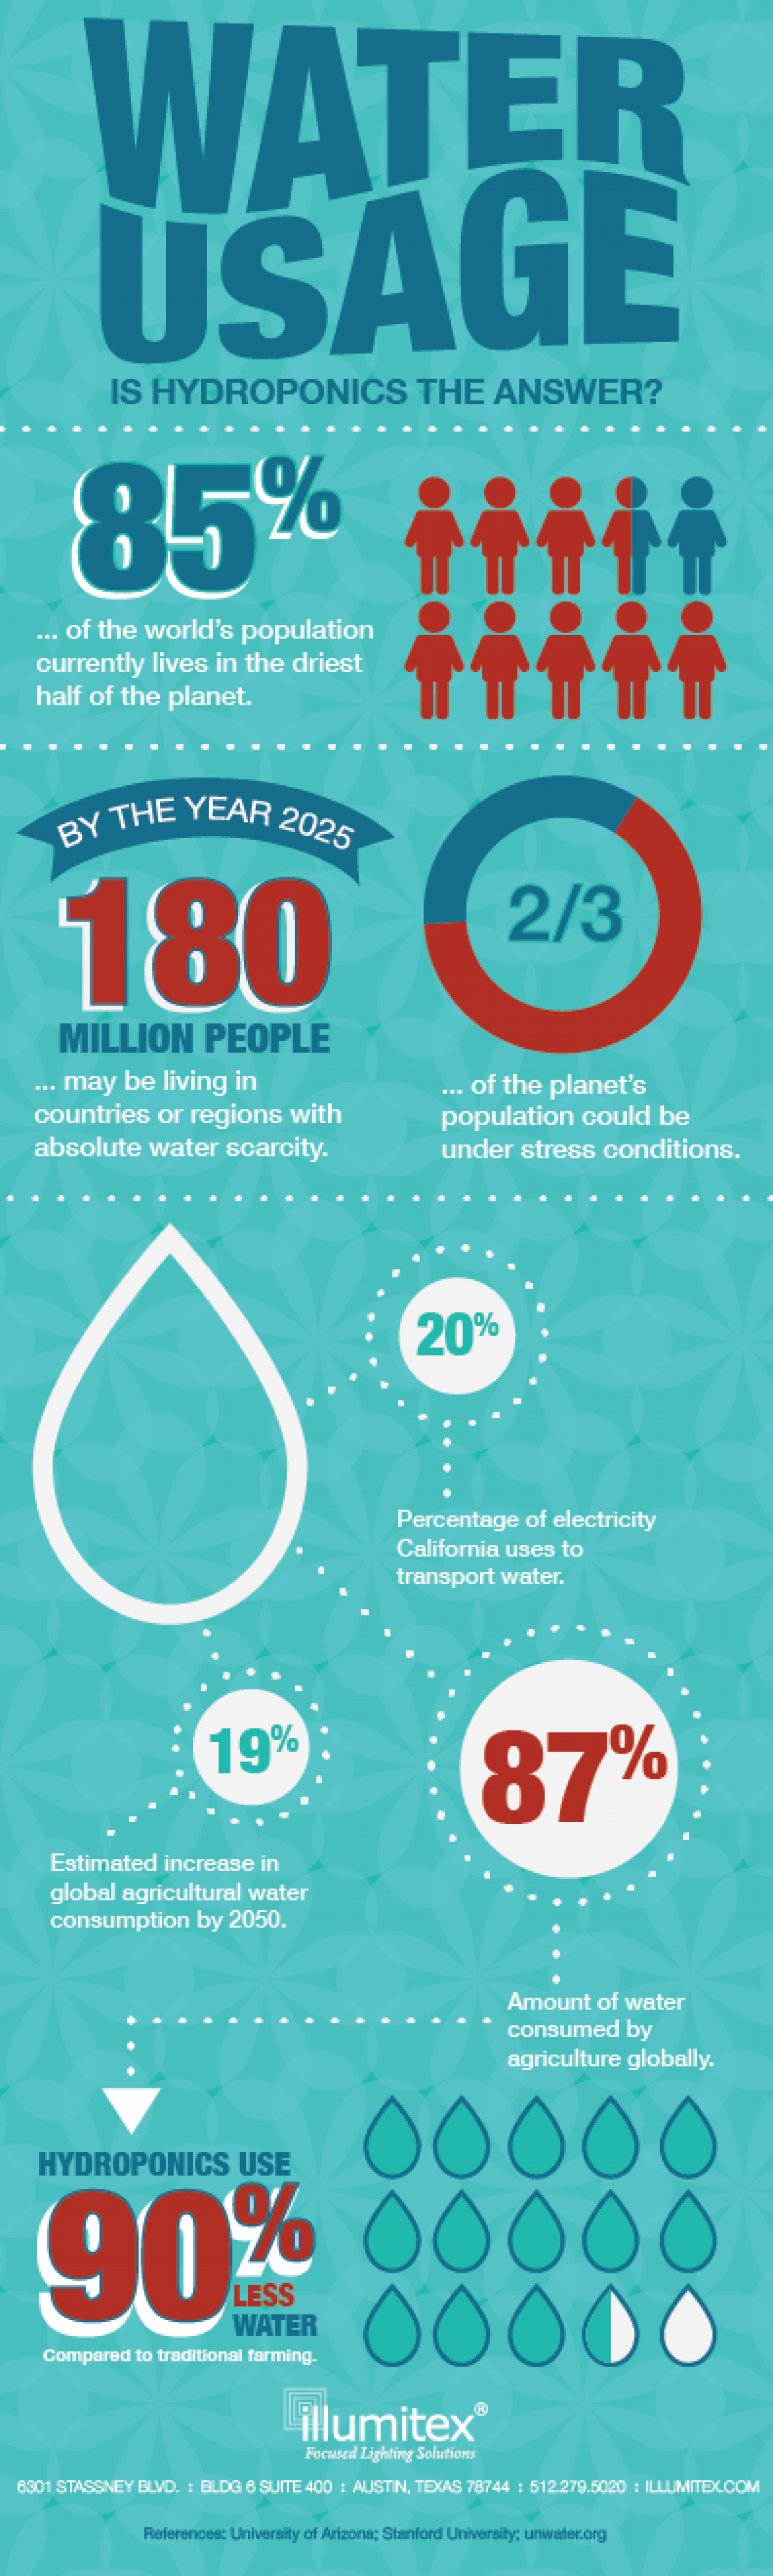 Water Usage: Is Hydroponics the Answer?  Infographic